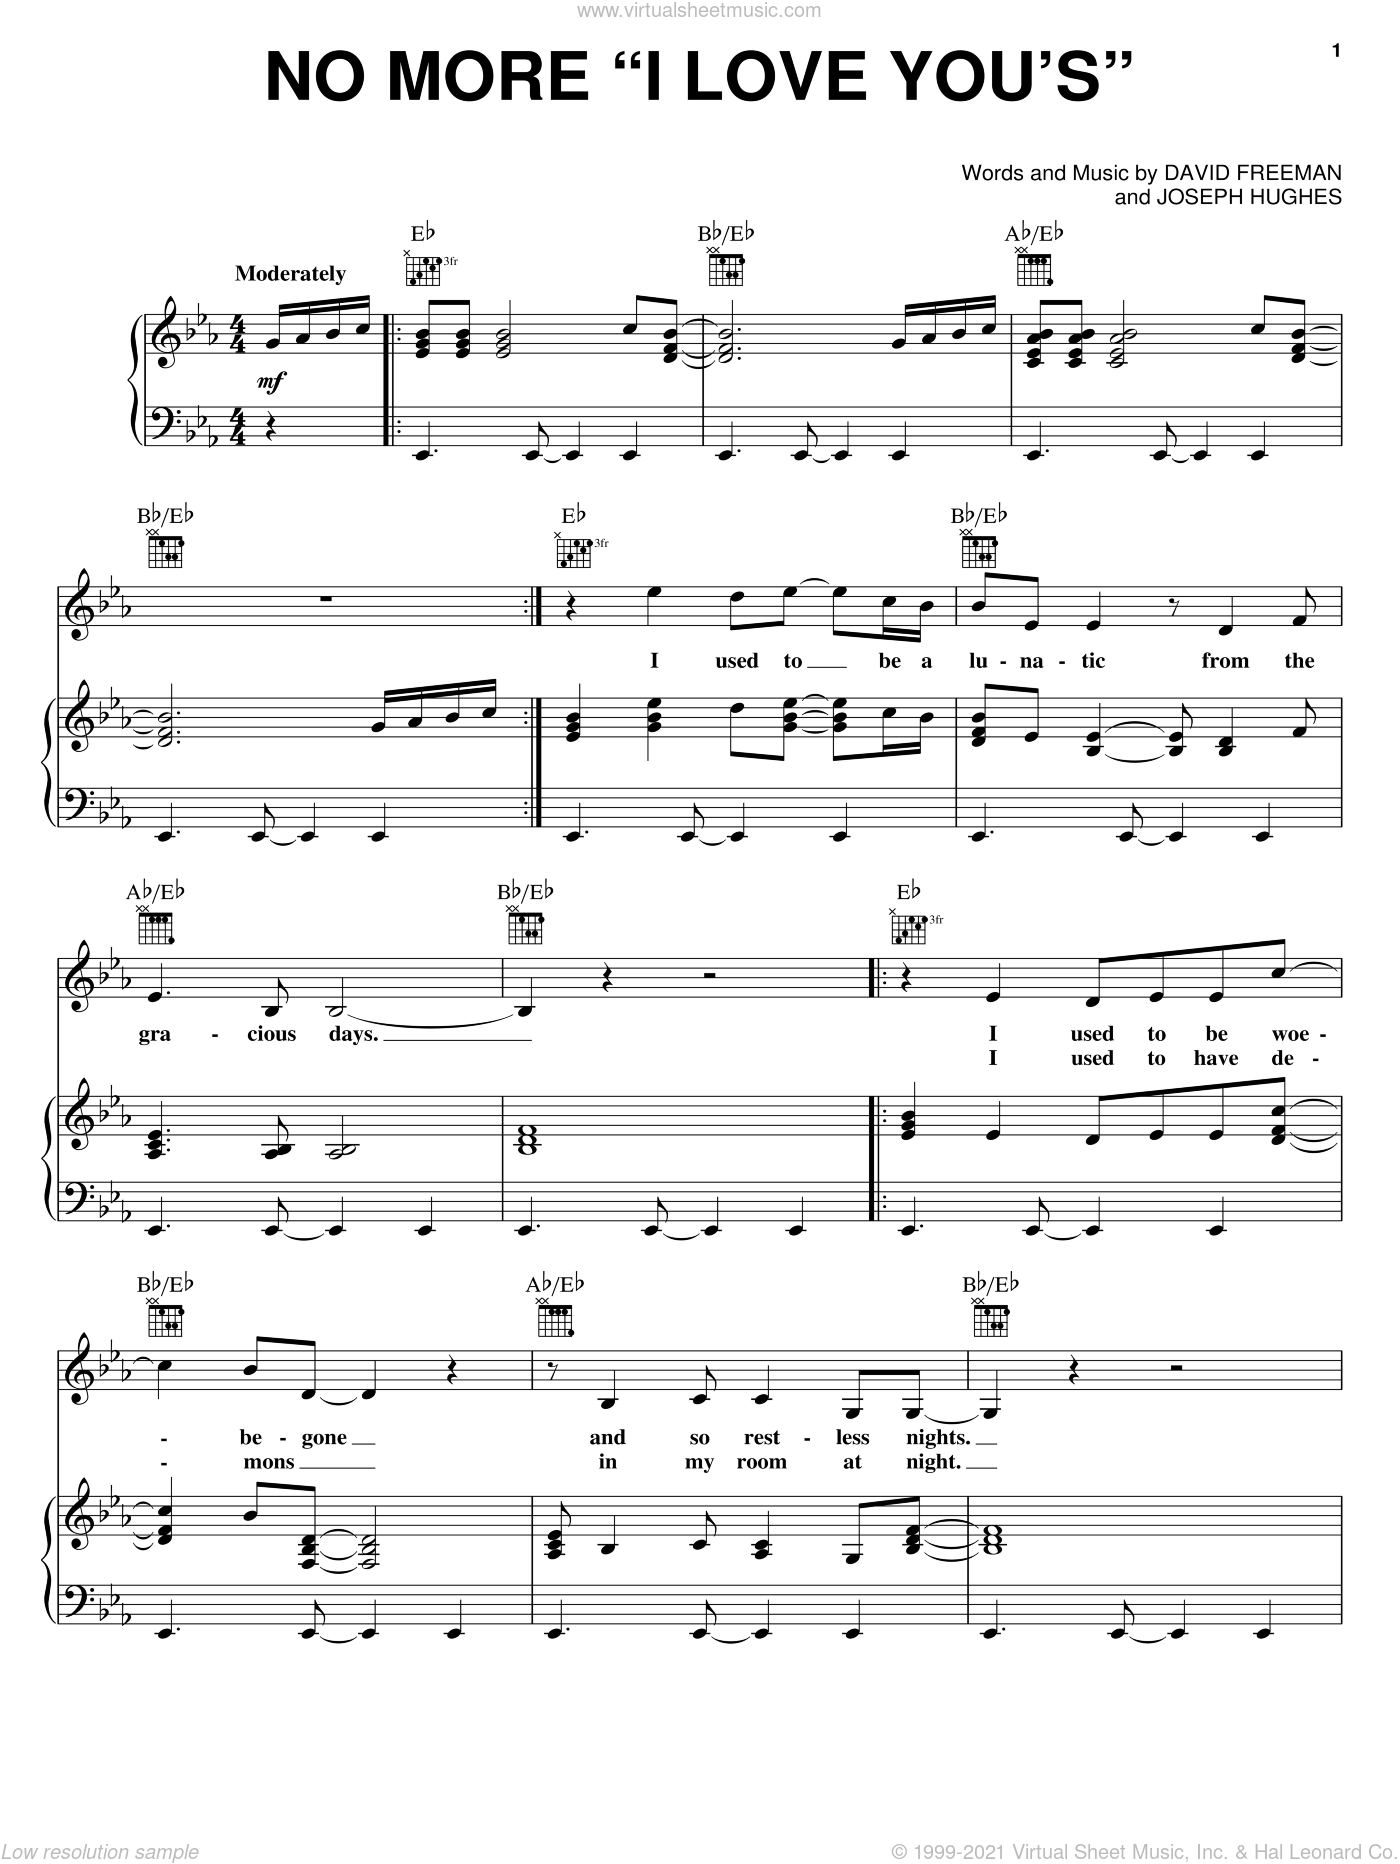 No More 'I Love You's' sheet music for voice, piano or guitar by Annie Lennox, David Freeman and Joseph Hughes, intermediate skill level